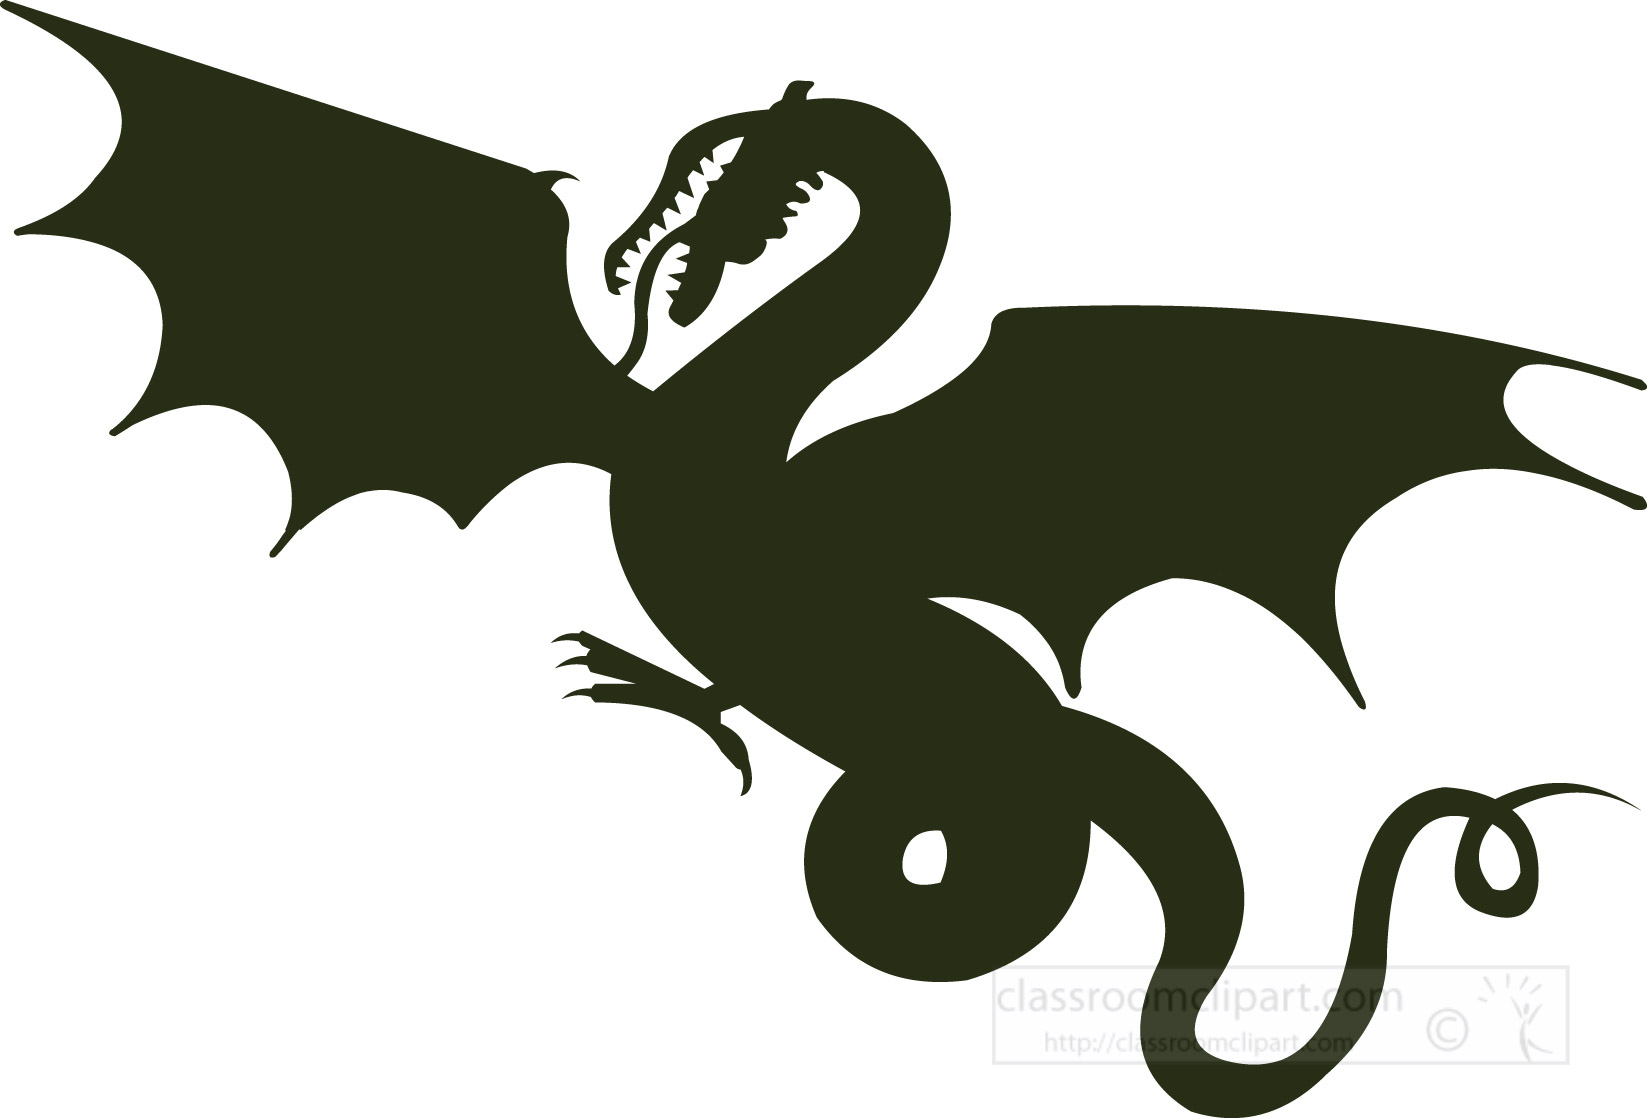 silhouette-of-medieval-dragon-clipart-019.jpg